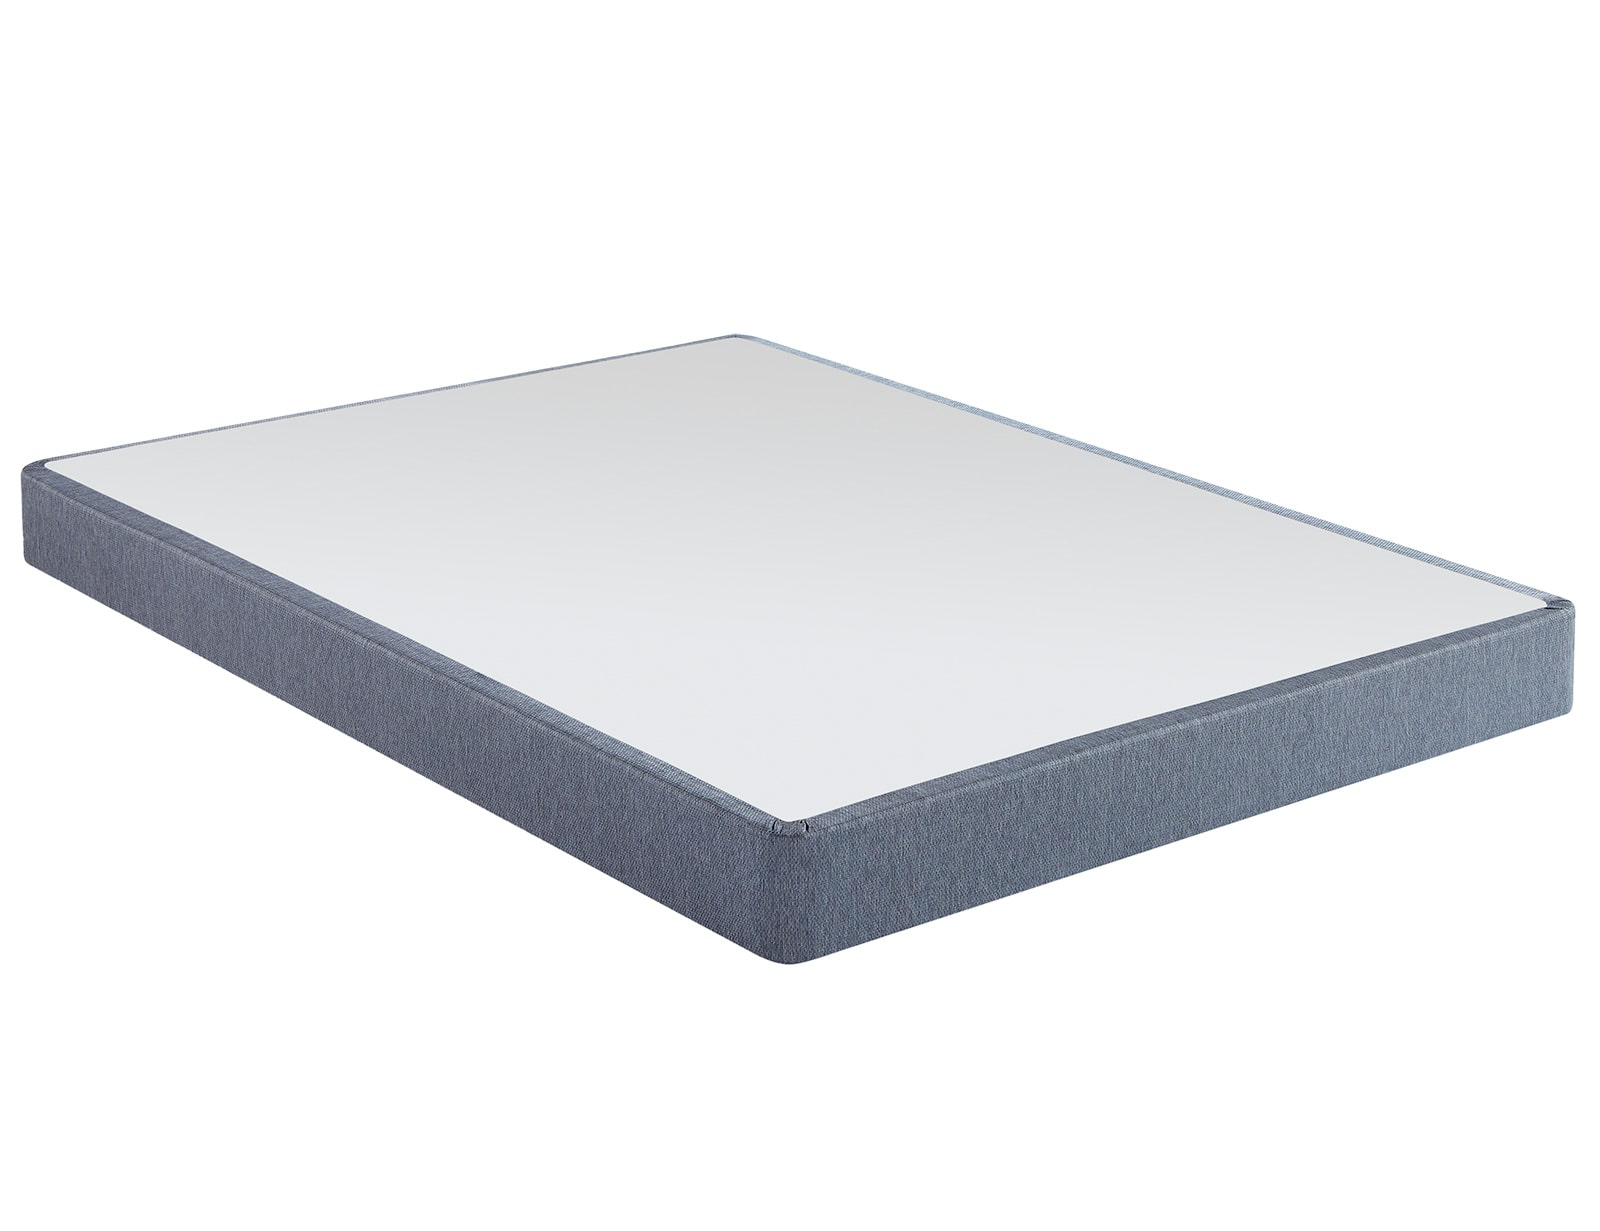 Clearance Sale 70% Off: Mattress Foundations